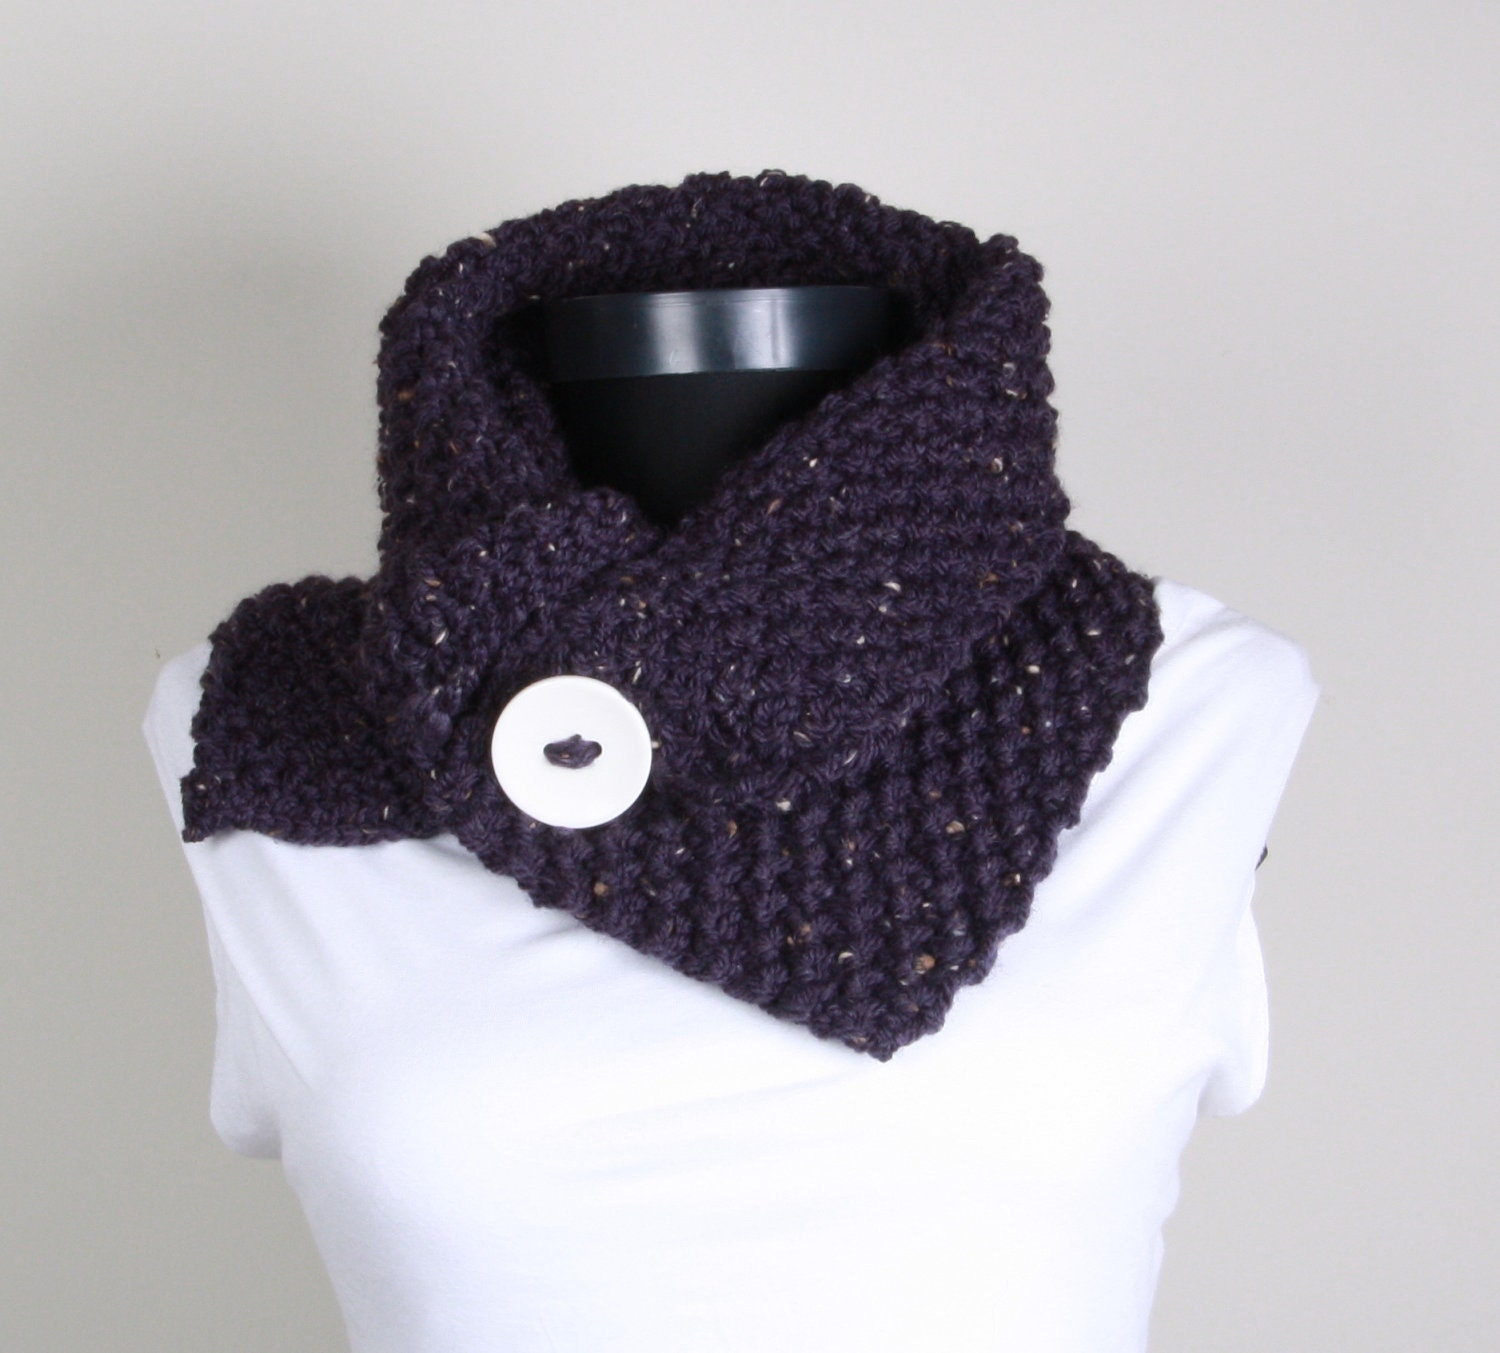 Purple knitted neckwarmer with big white button